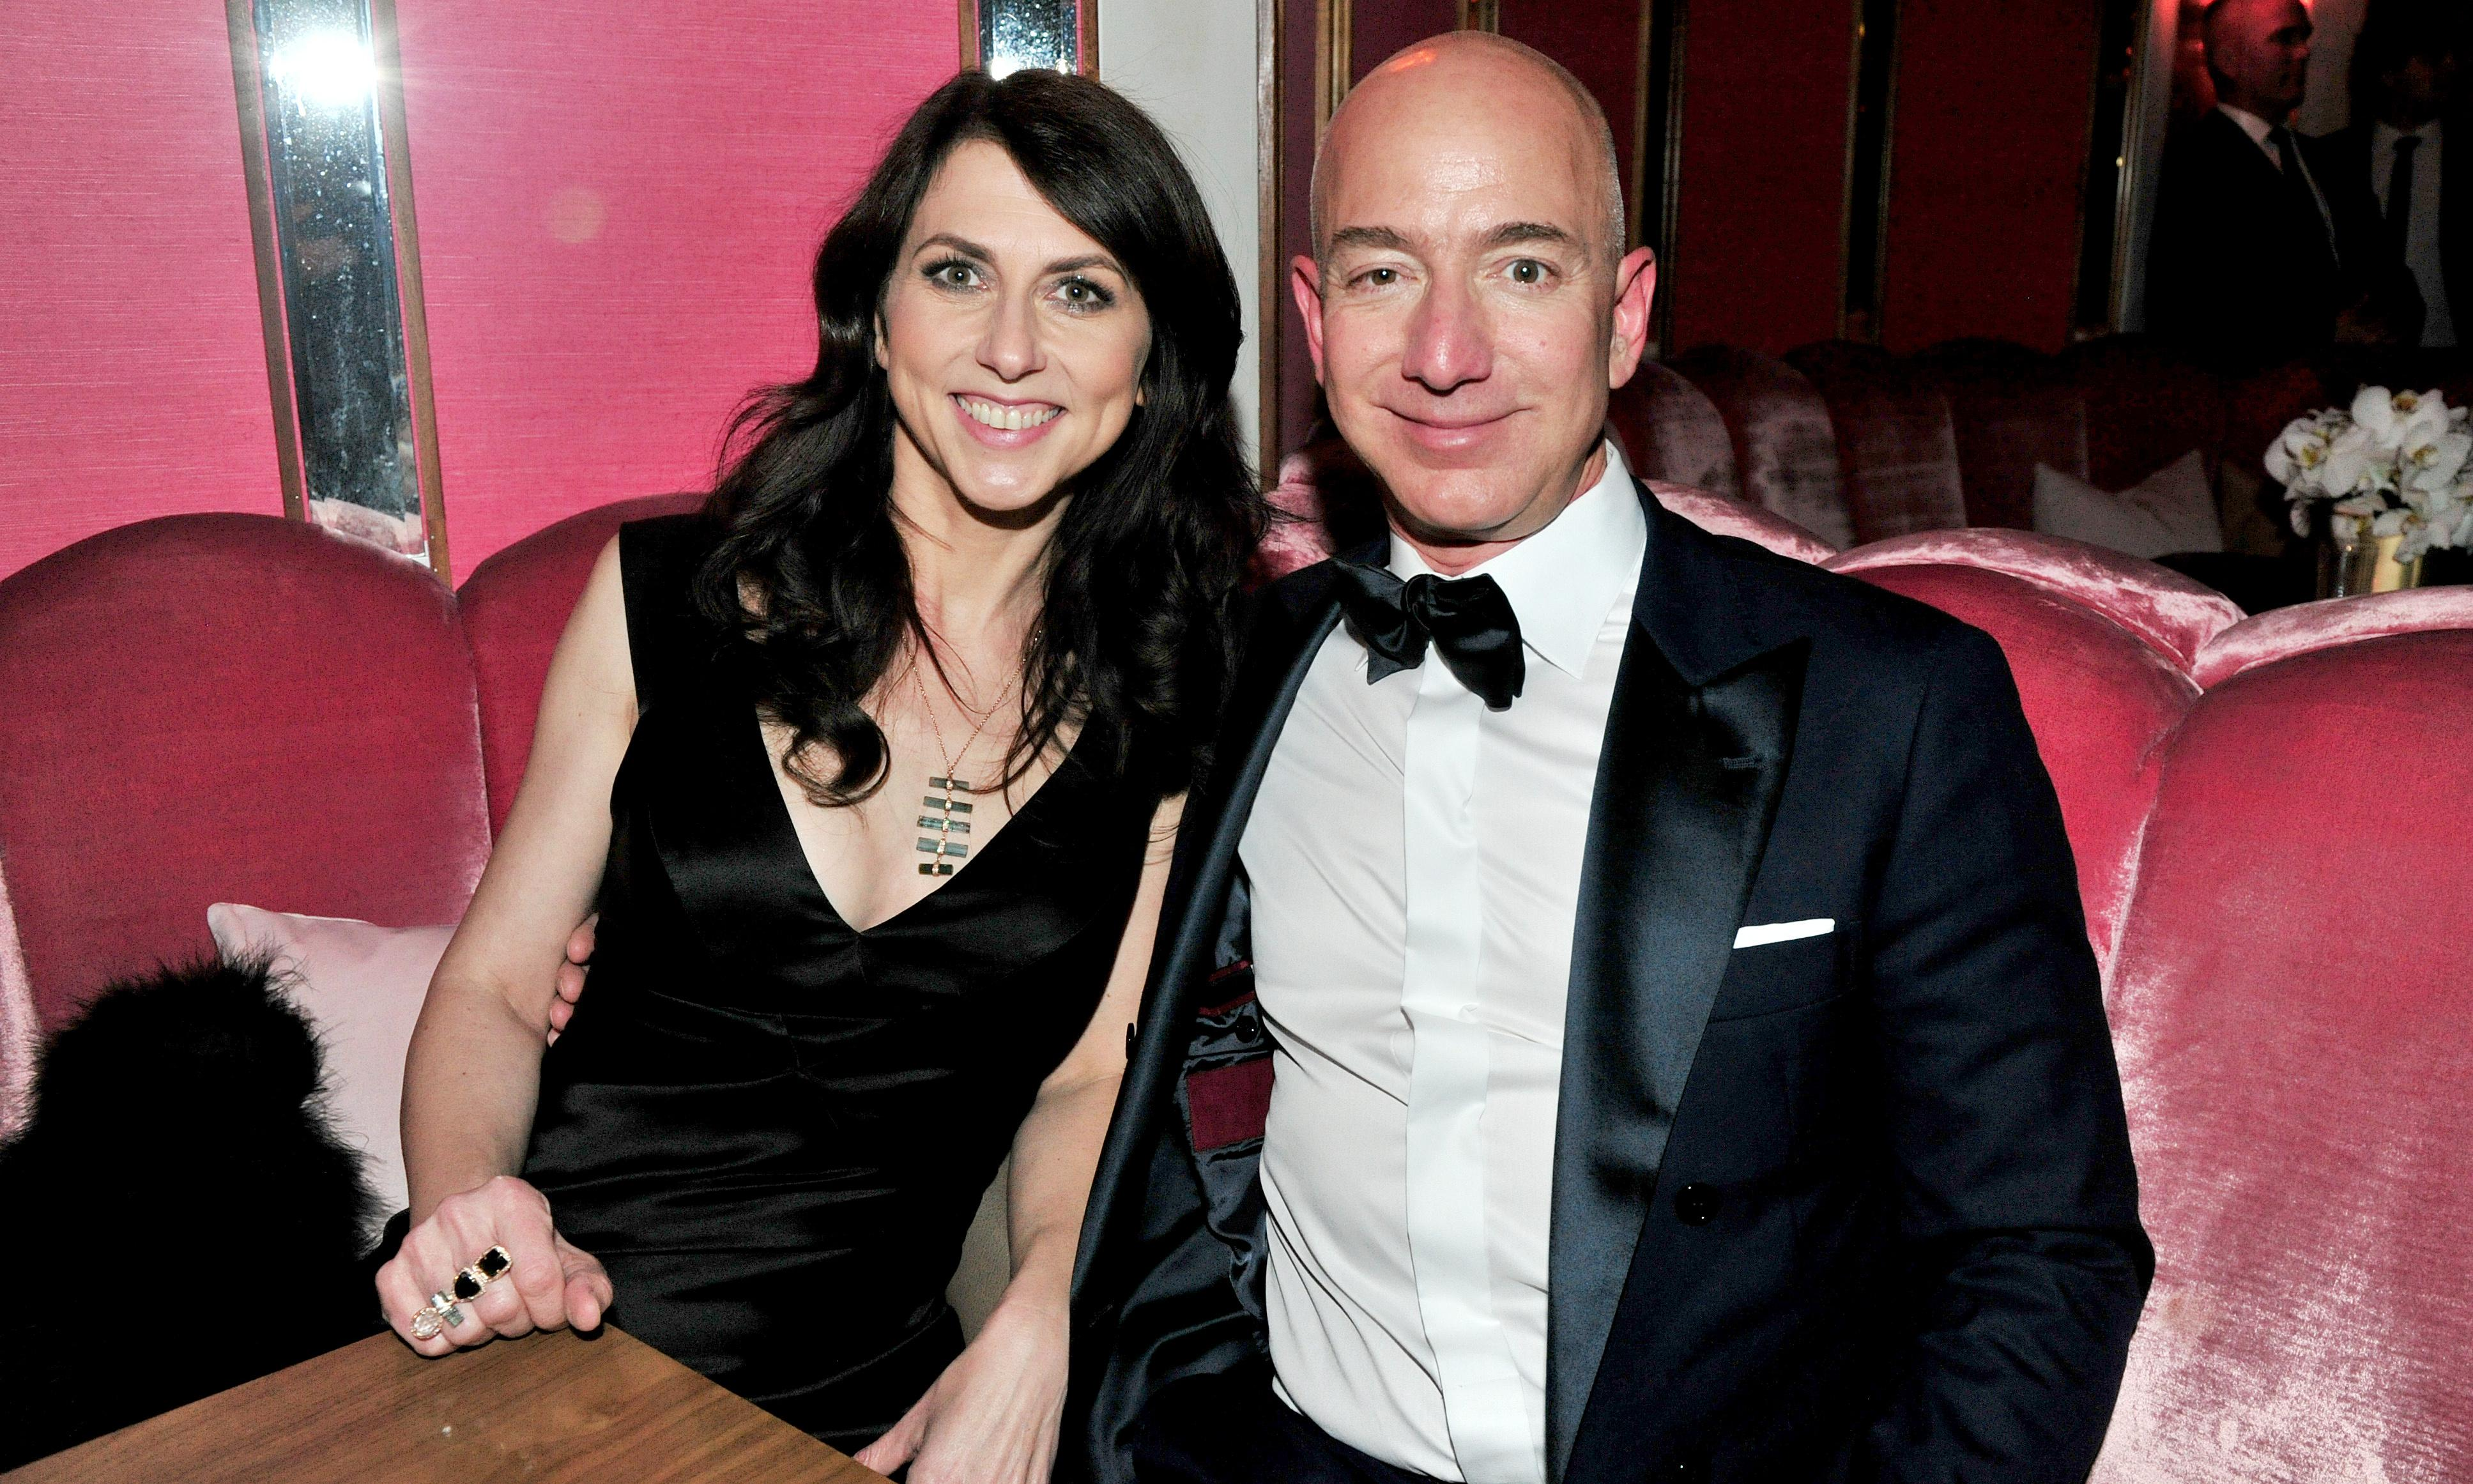 MacKenzie Bezos: divorce from Amazon CEO could make her world's richest woman